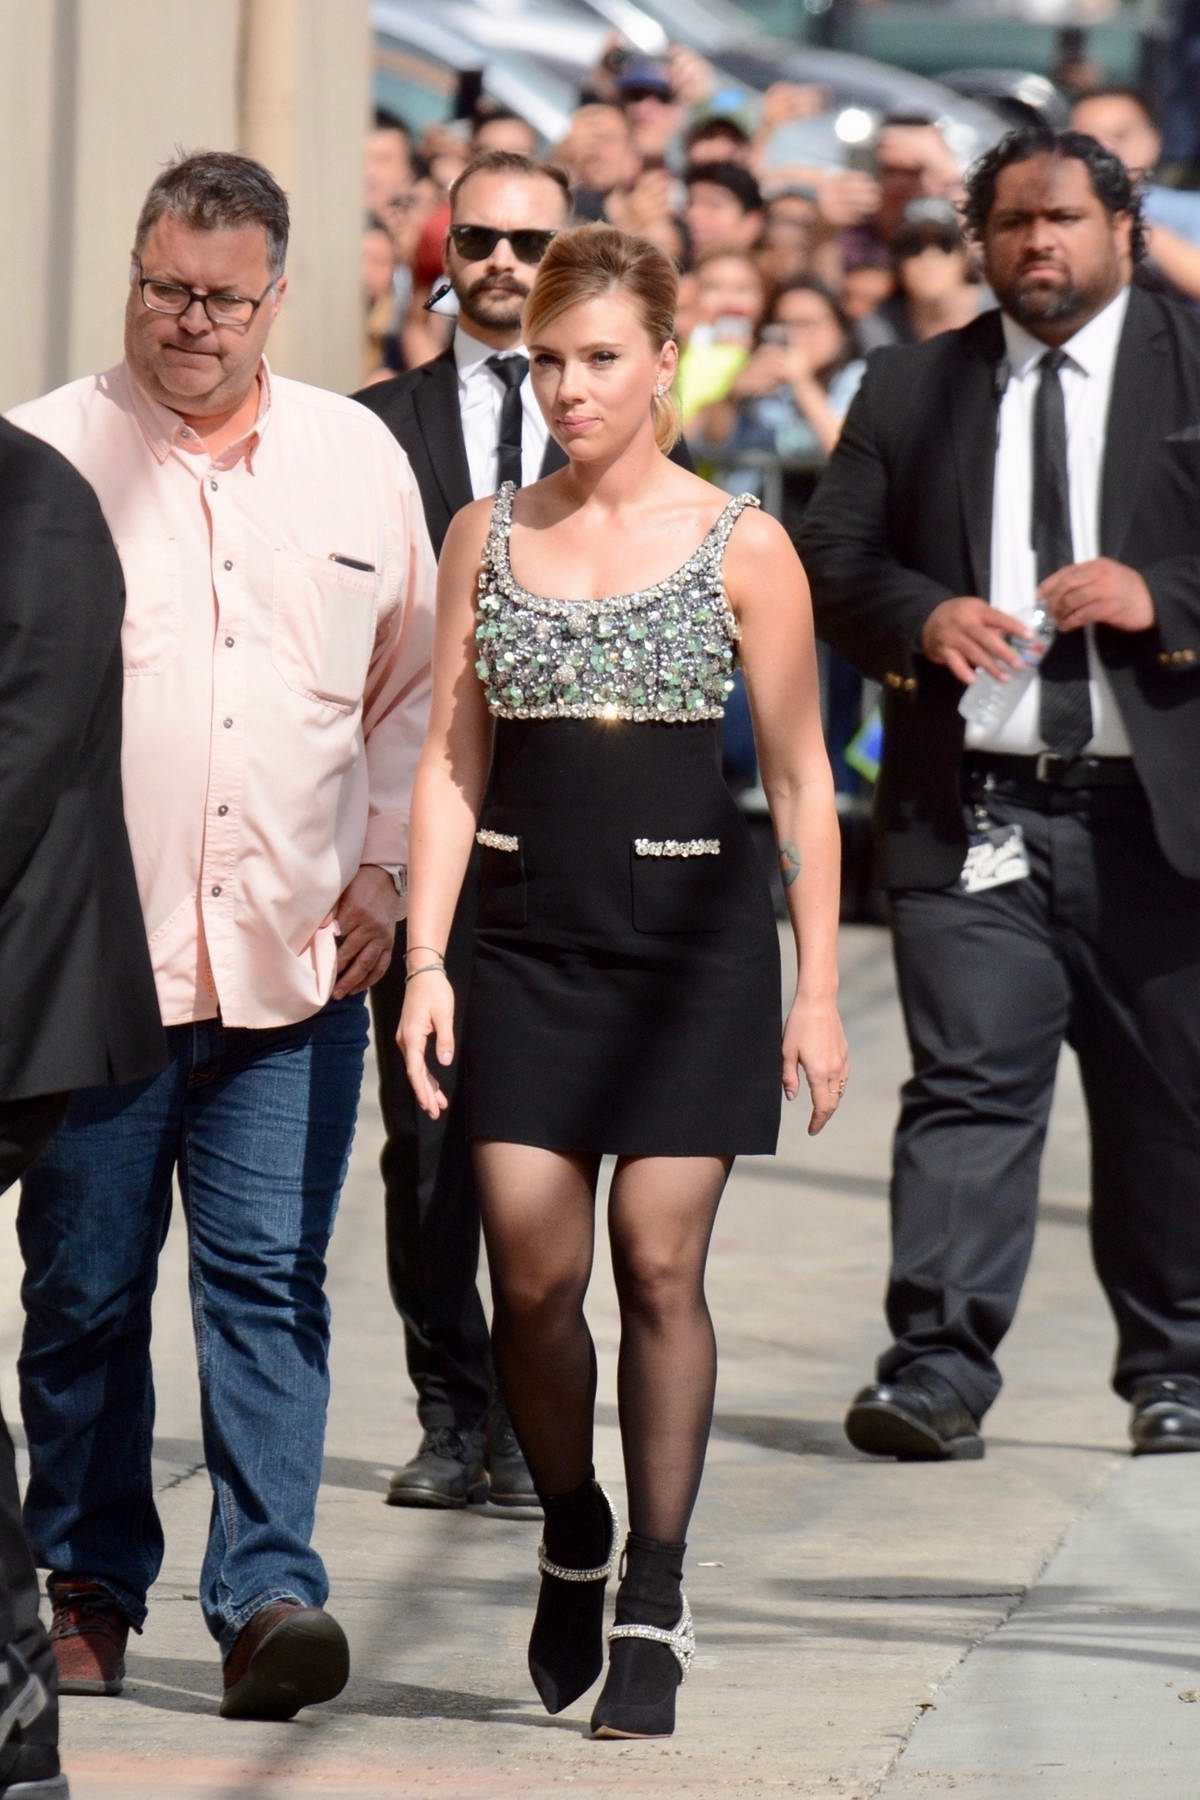 Scarlett Johansson waves for the camera as she arrives for her appearance on Jimmy Kimmel Live! in Hollywood, California